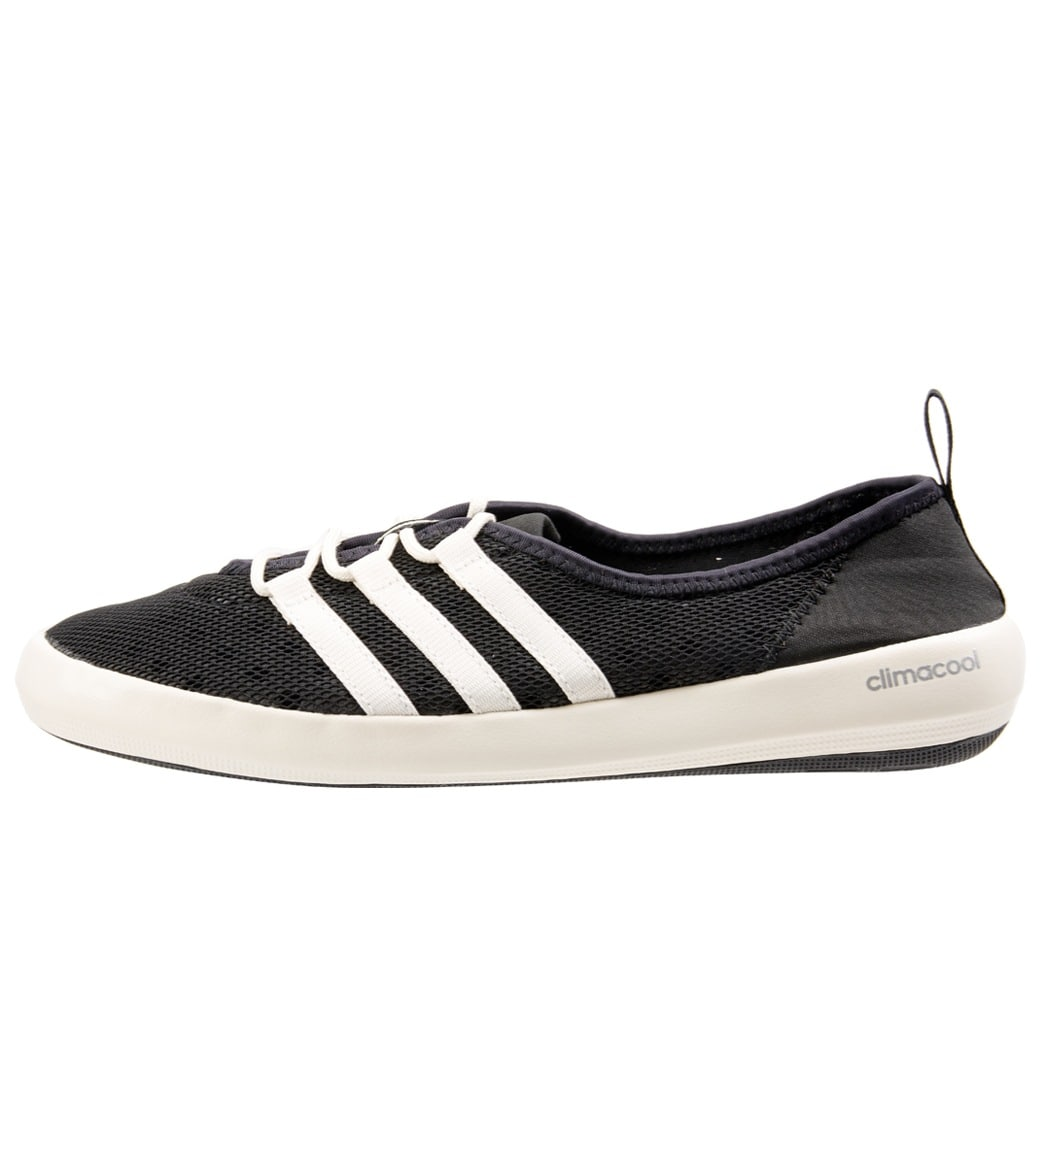 3a0deebd5 Adidas Women s Climacool Boat Sleek Water Shoes at SwimOutlet.com ...